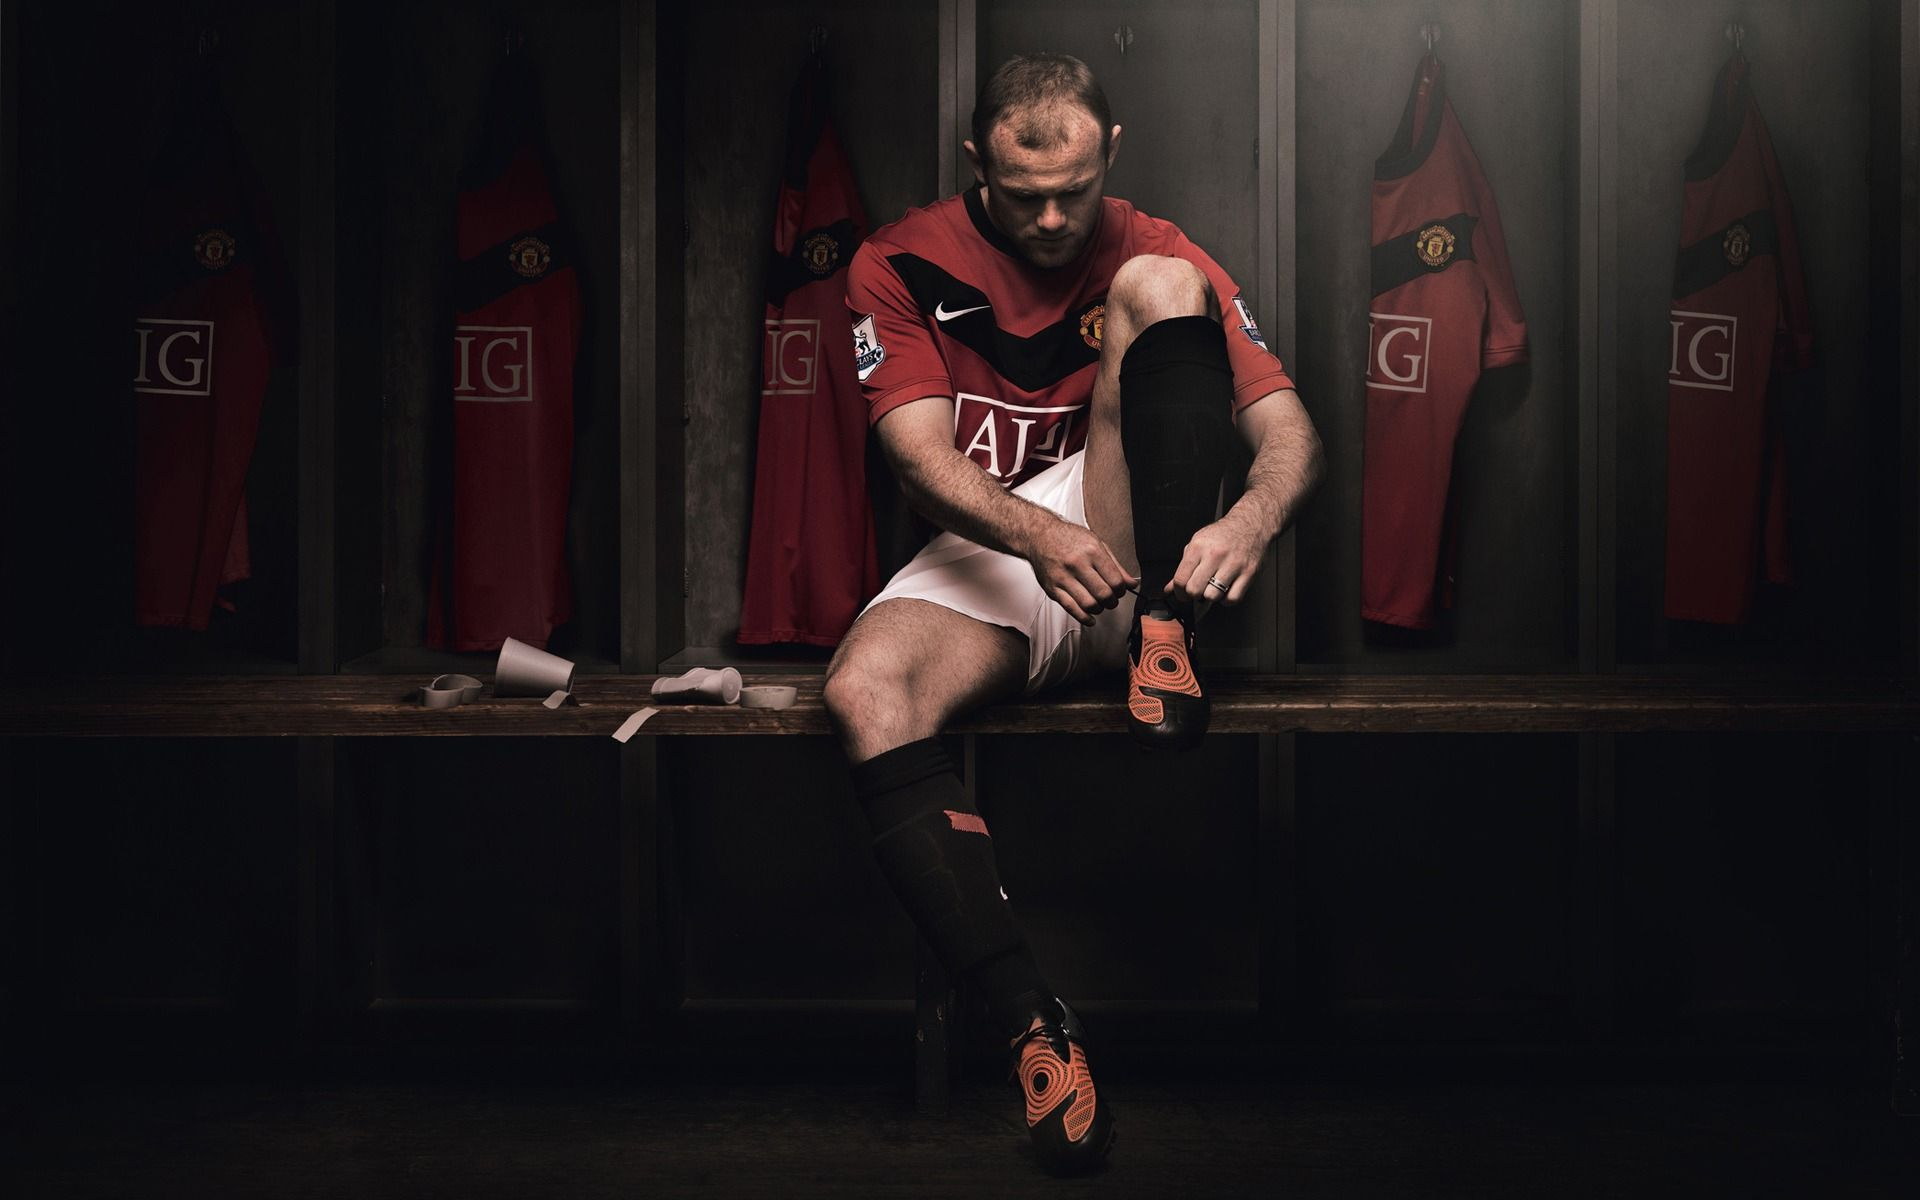 Wayne Rooney Wallpapers 46 Http Manchesterunitedwallpapers Org Wayne Rooney Wallpapers 46 Html Wayne Rooney Manchester United Logo Best Football Players